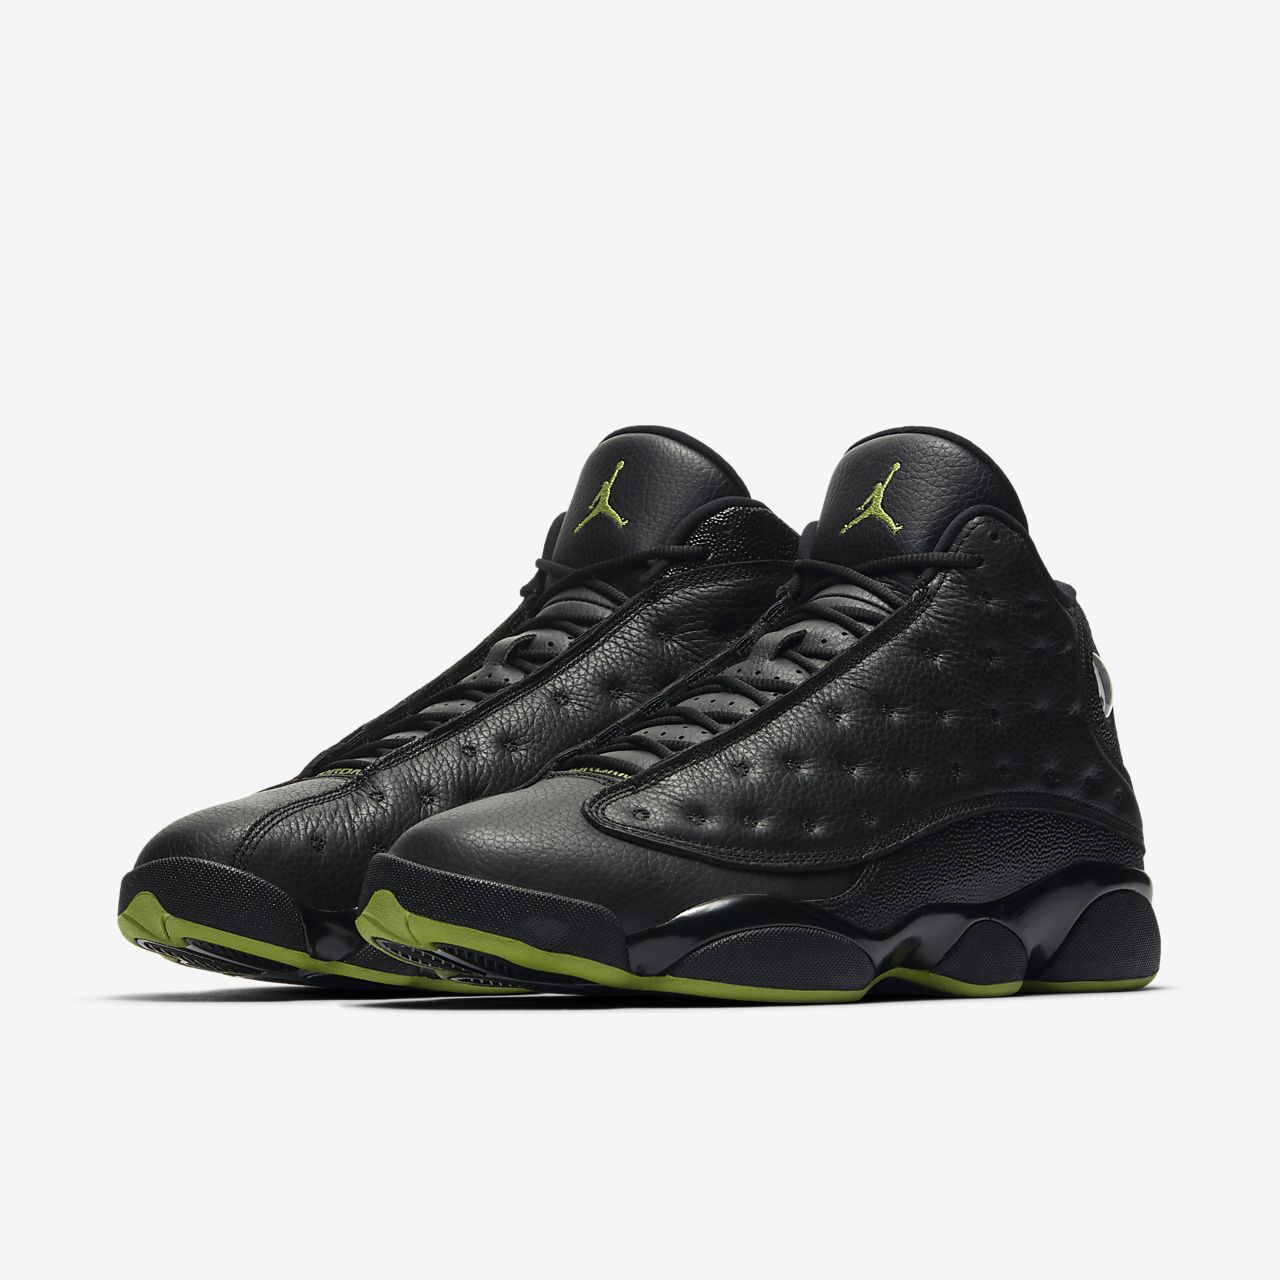 0e627501a86c93 Air Jordan 13 Retro Men s Shoe. Nike.com SG